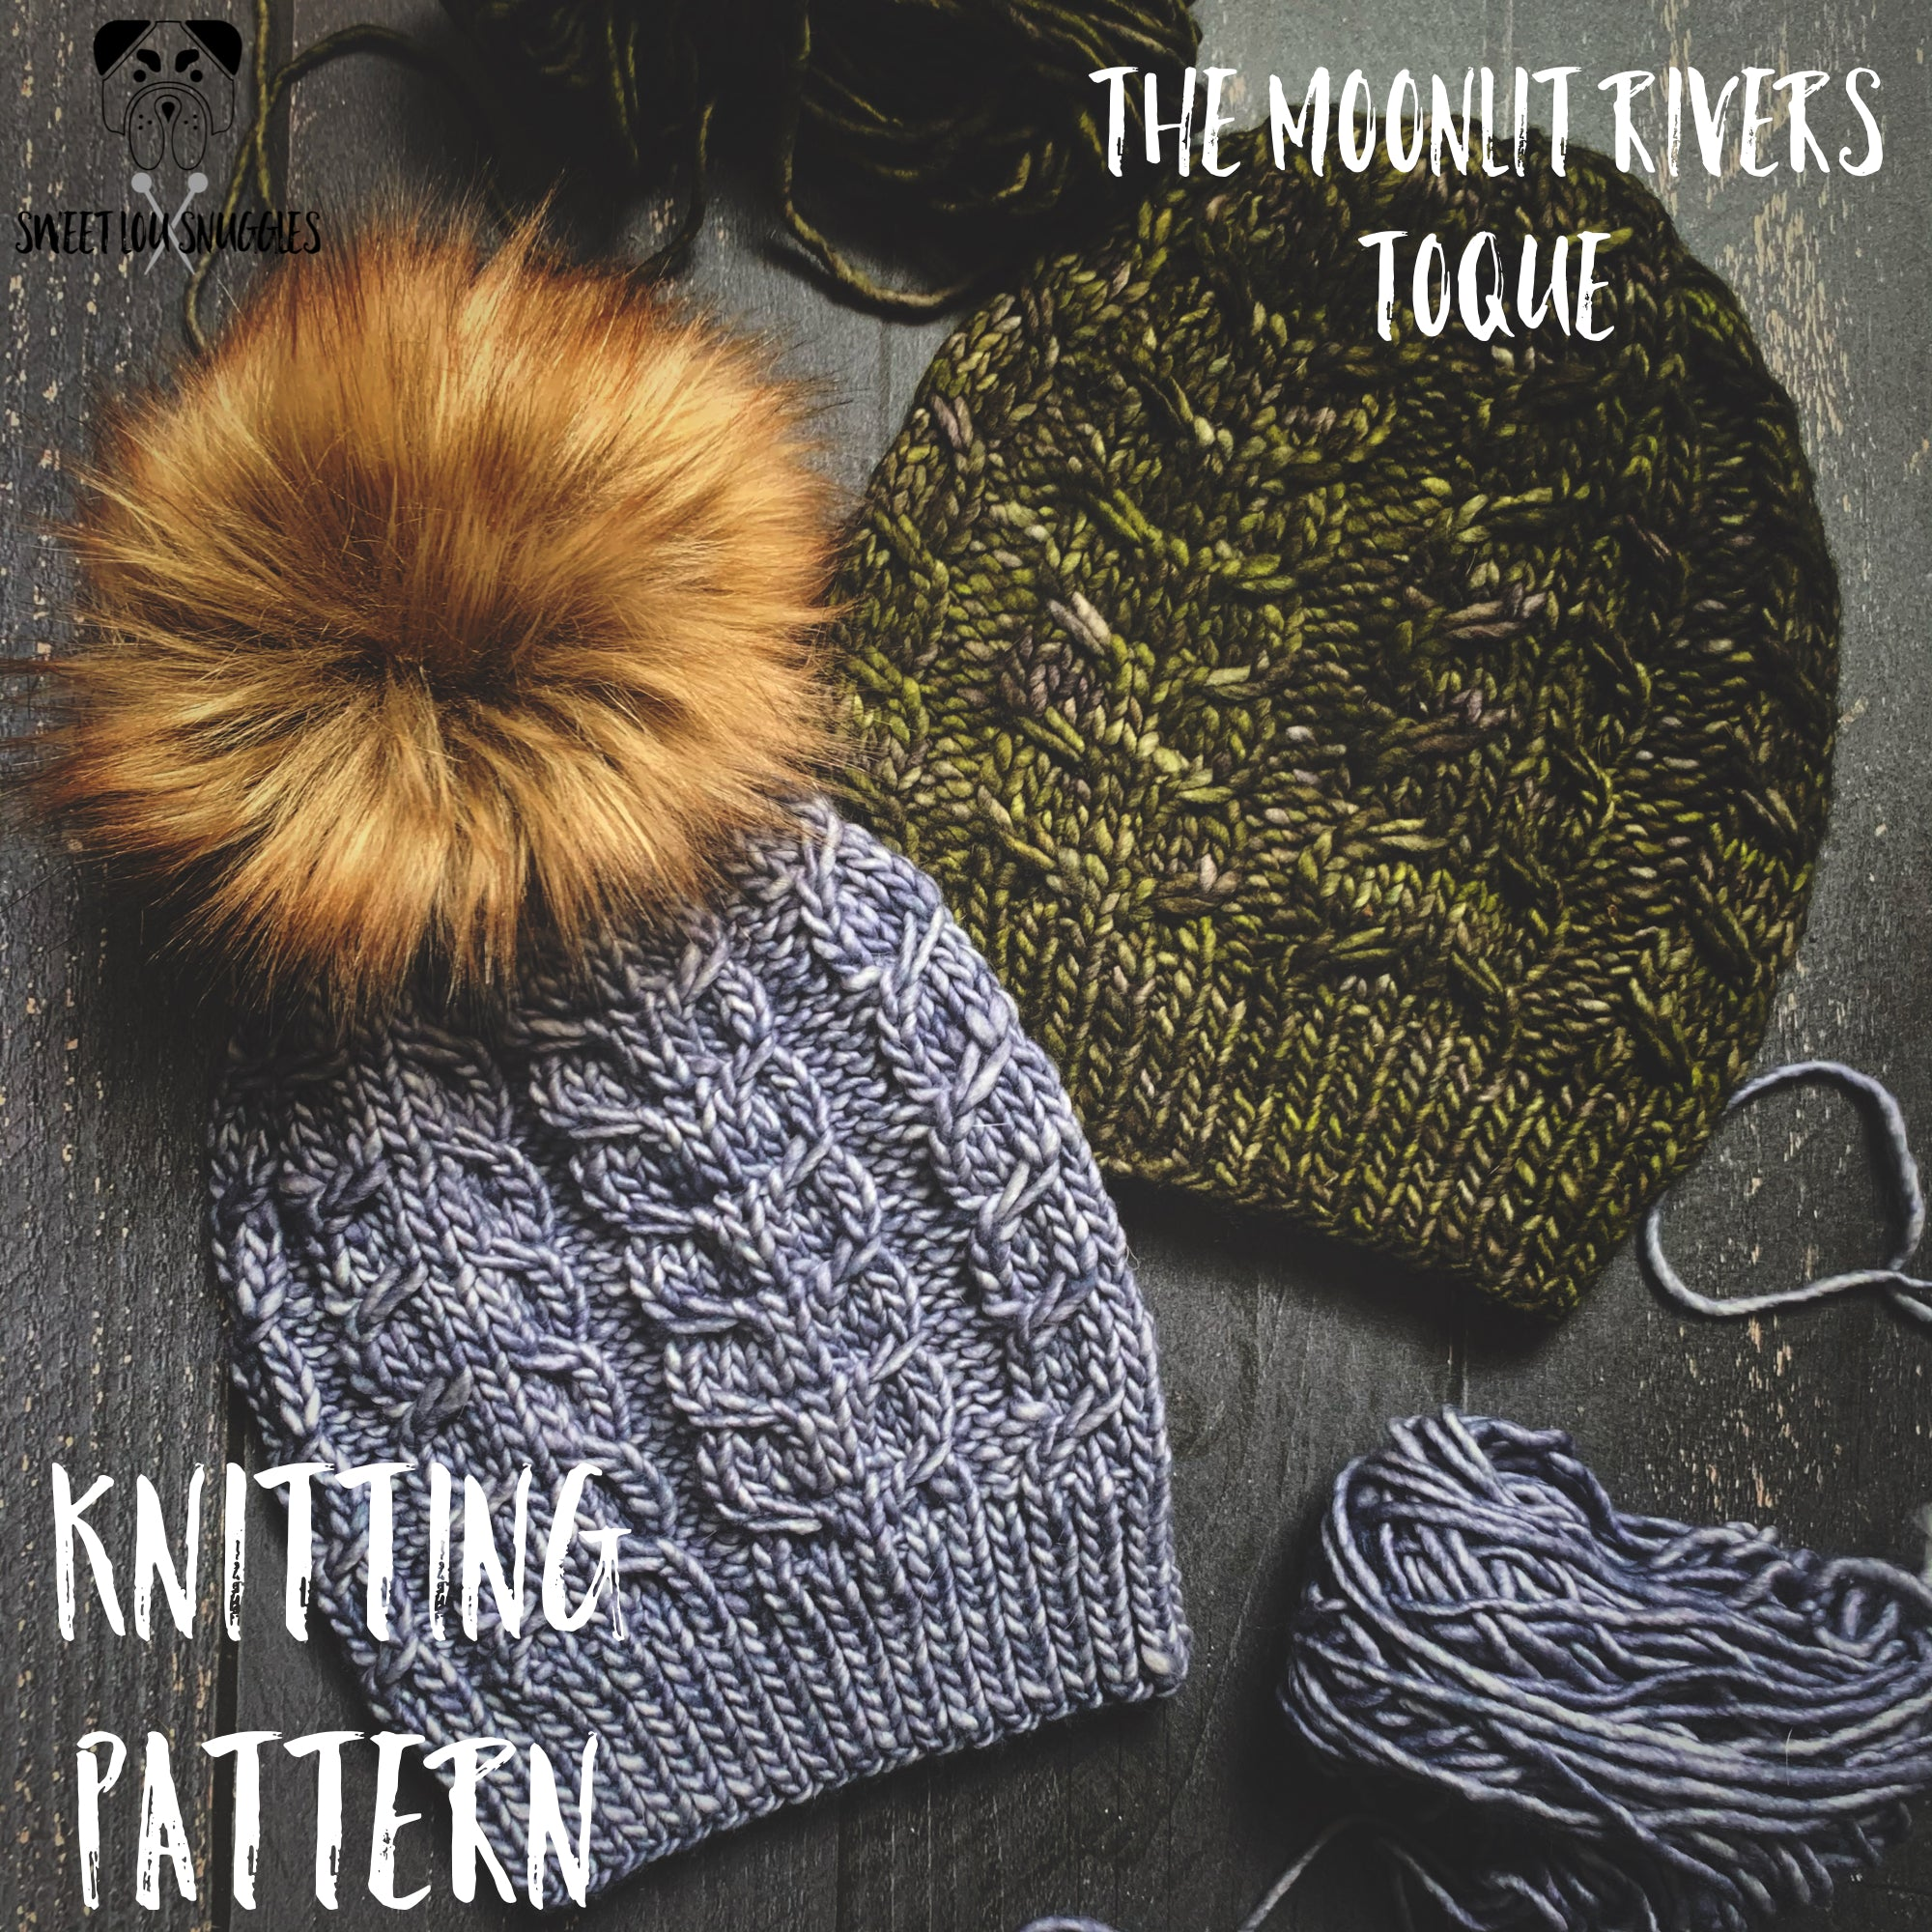 The Moonlit Rivers Toque KNITTING PATTERN